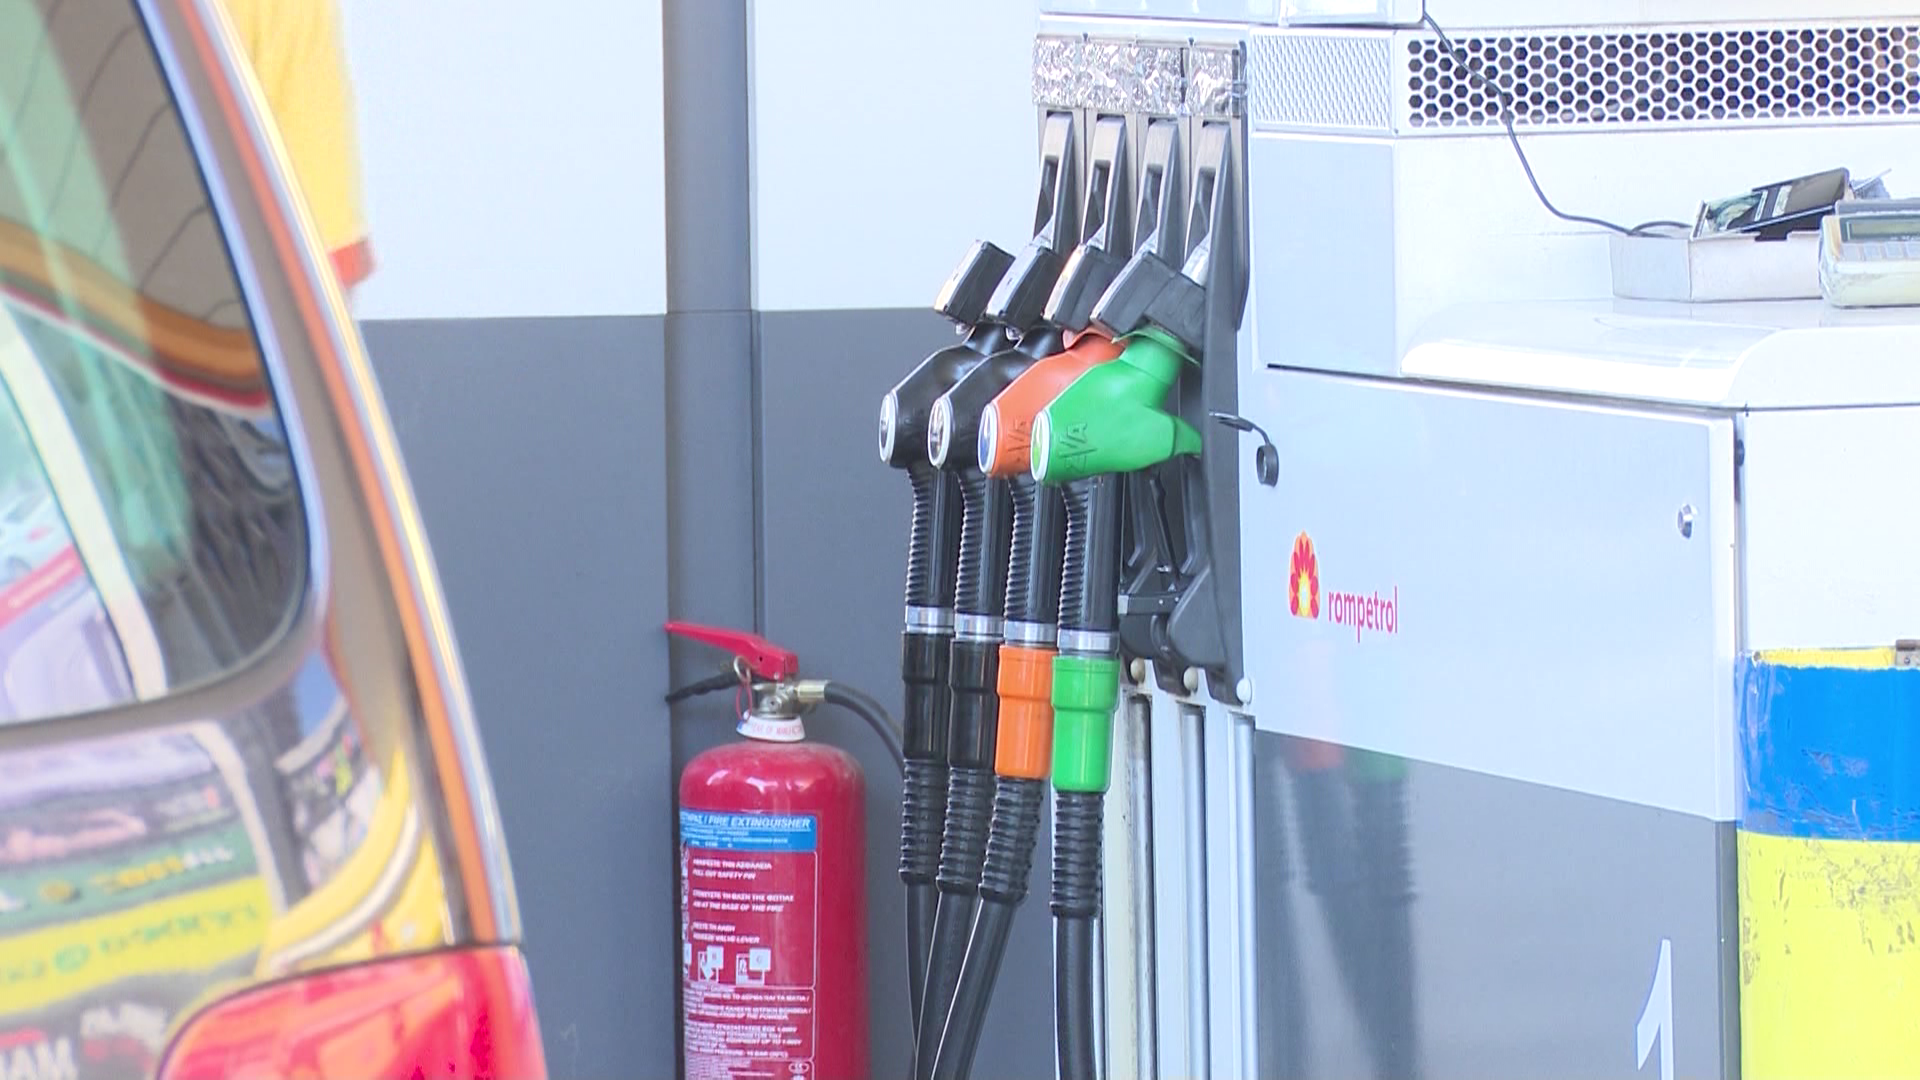 Petrol stations will be checked for fuel quality control